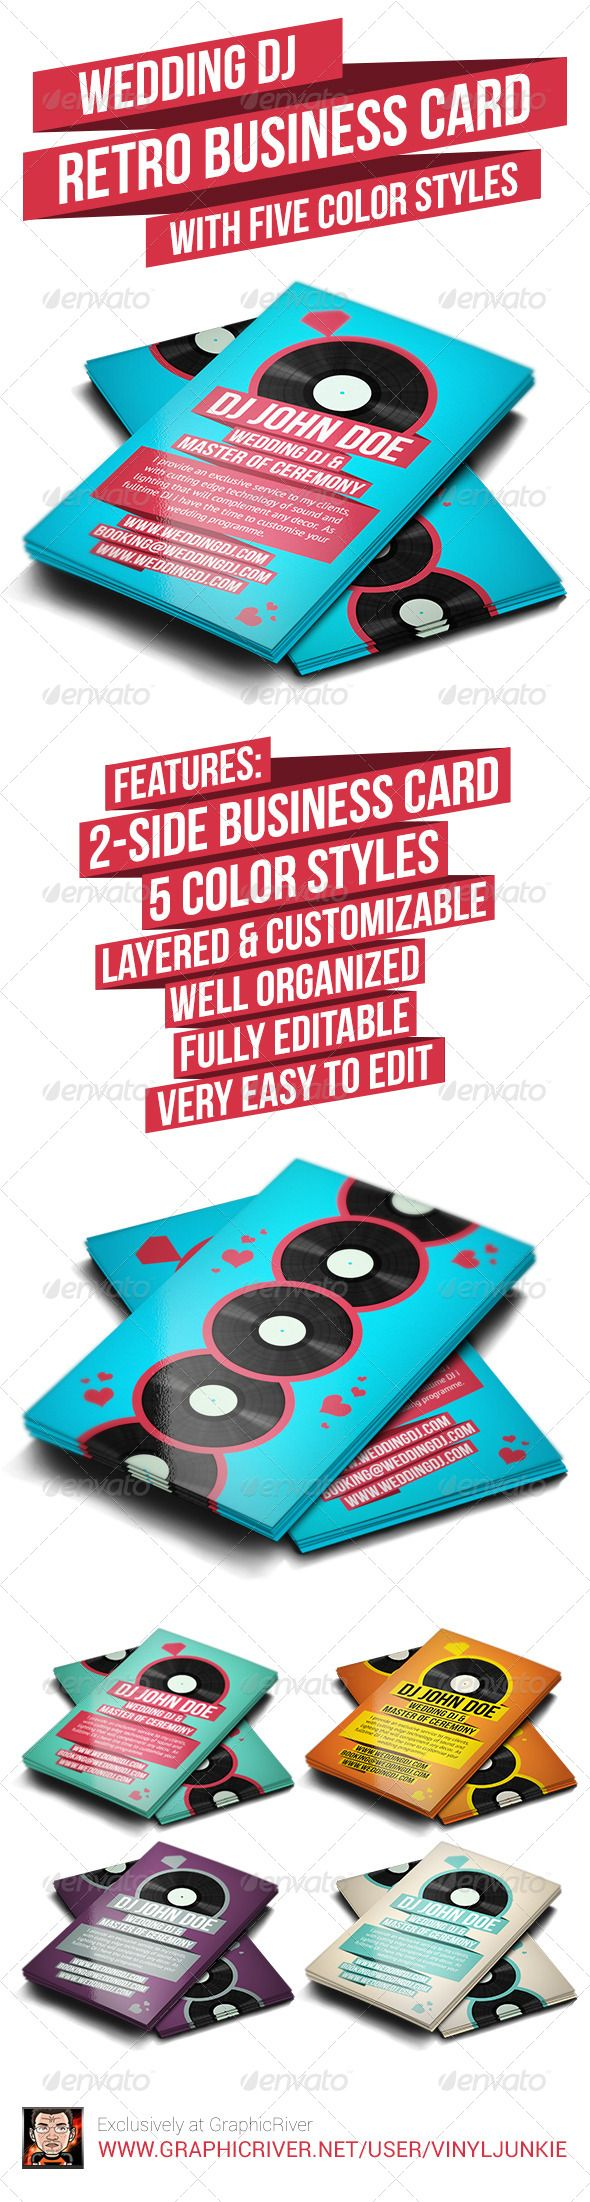 34 Best Dj Business Cards Images On Pinterest Dj Business Cards